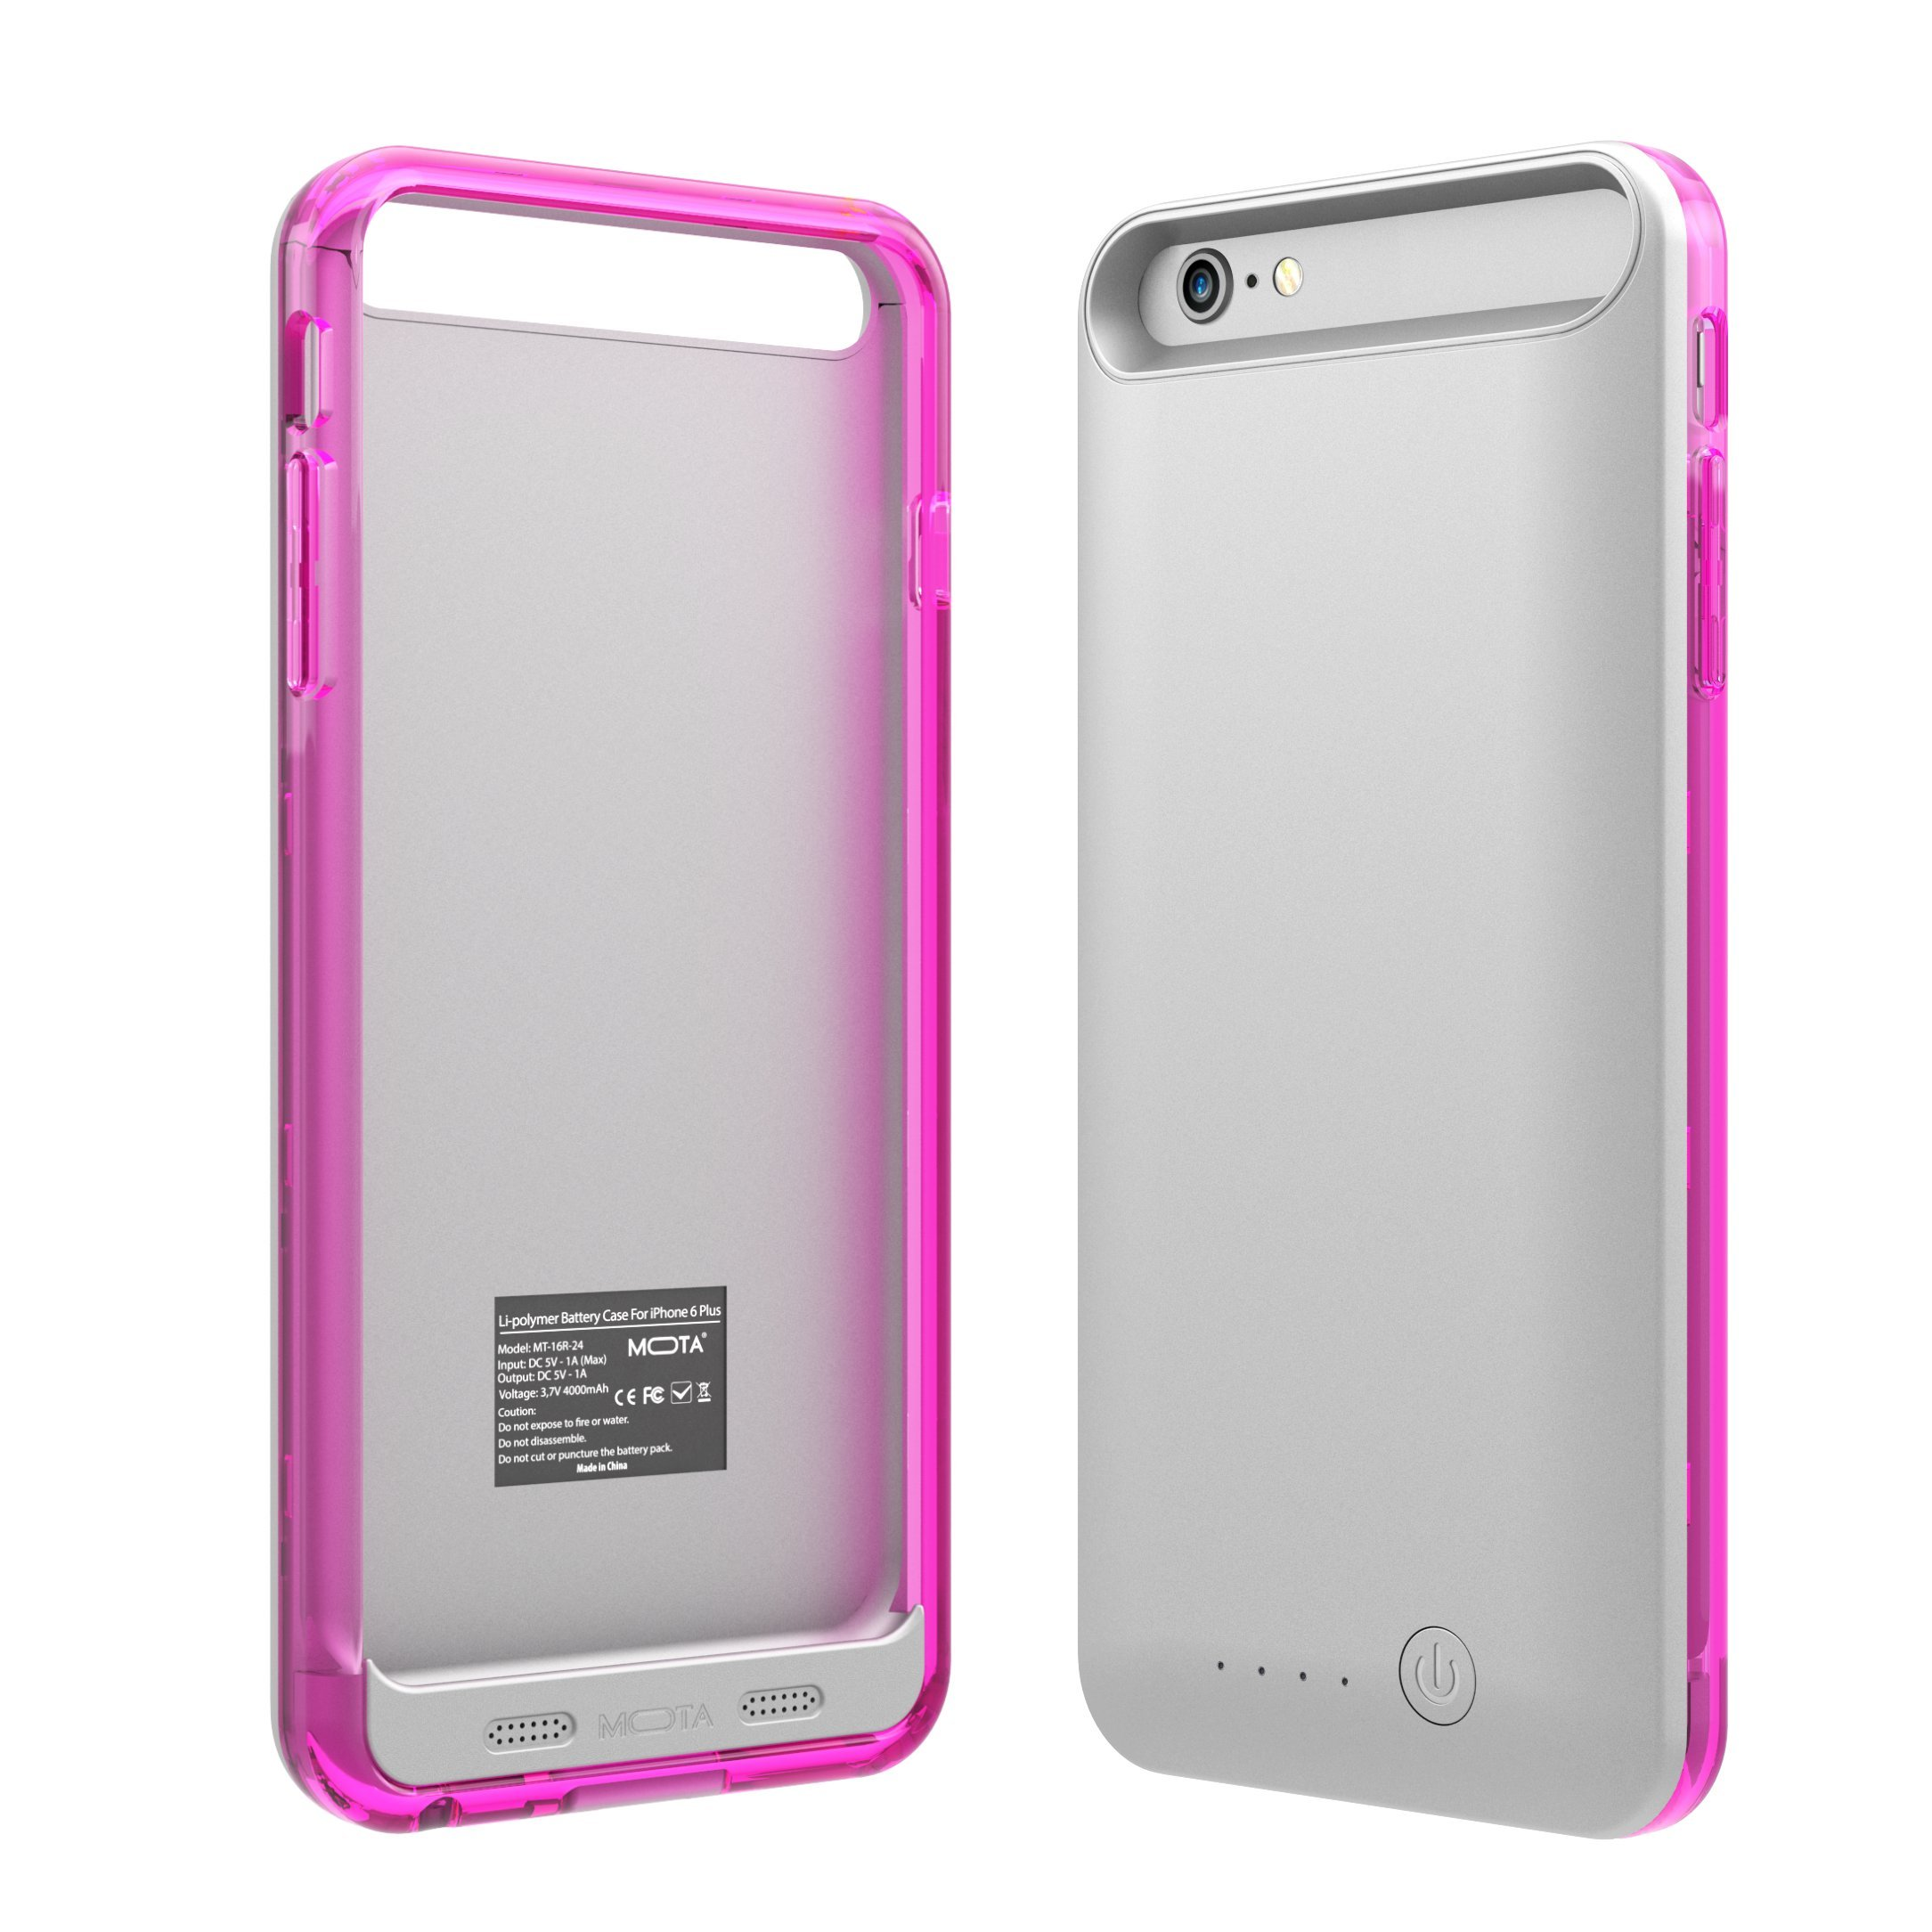 TAMO iPhone 6/6s Extended Battery Case, TAMO 2400 mAh dual-purposed Ultra-Slim Protective Extended Battery Case - Pink - Battery - Retail Packaging - Pink by TAMO (Image #6)